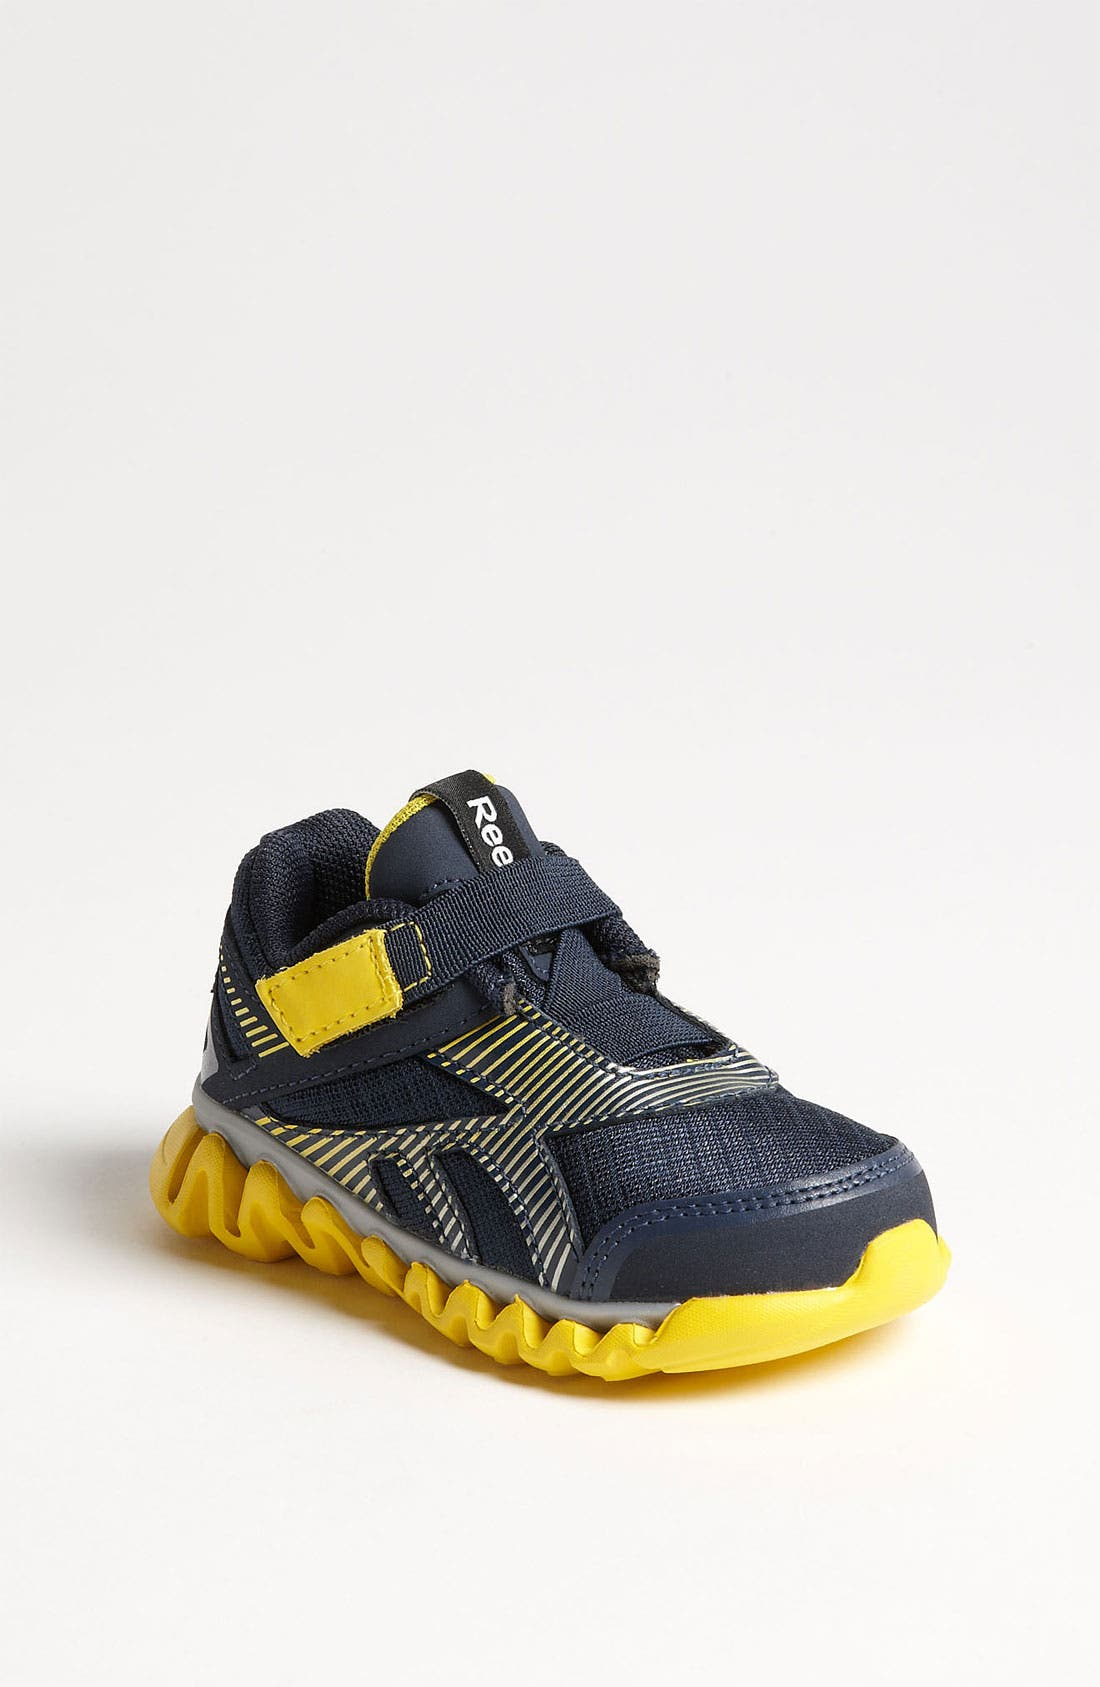 Main Image - Reebok 'ZigLite Electrify' Sneaker (Baby, Walker & Toddler)